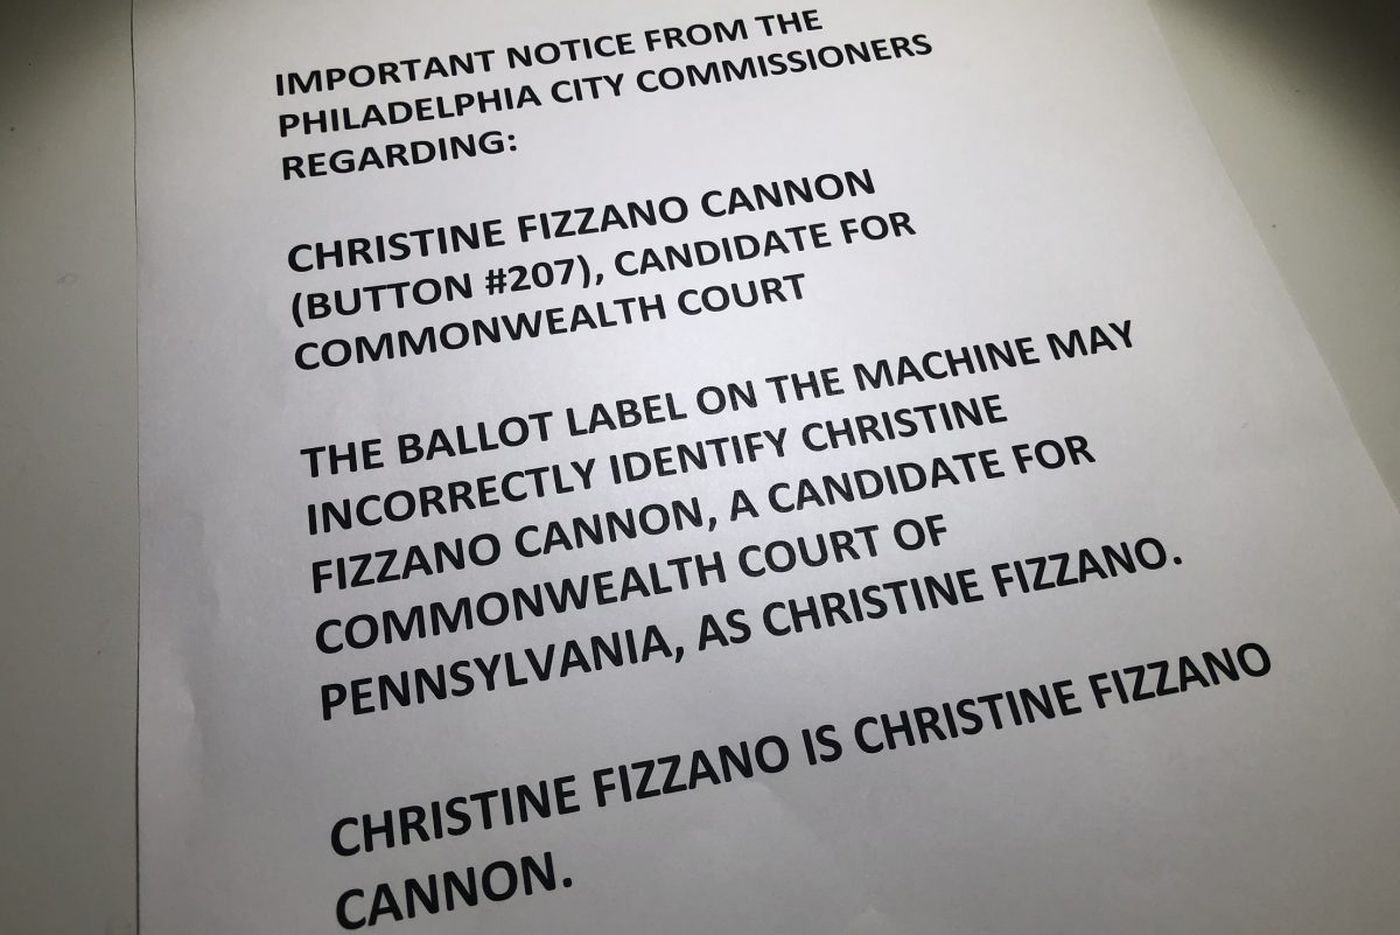 GOP judicial candidate's name wrong on Philly voting machines